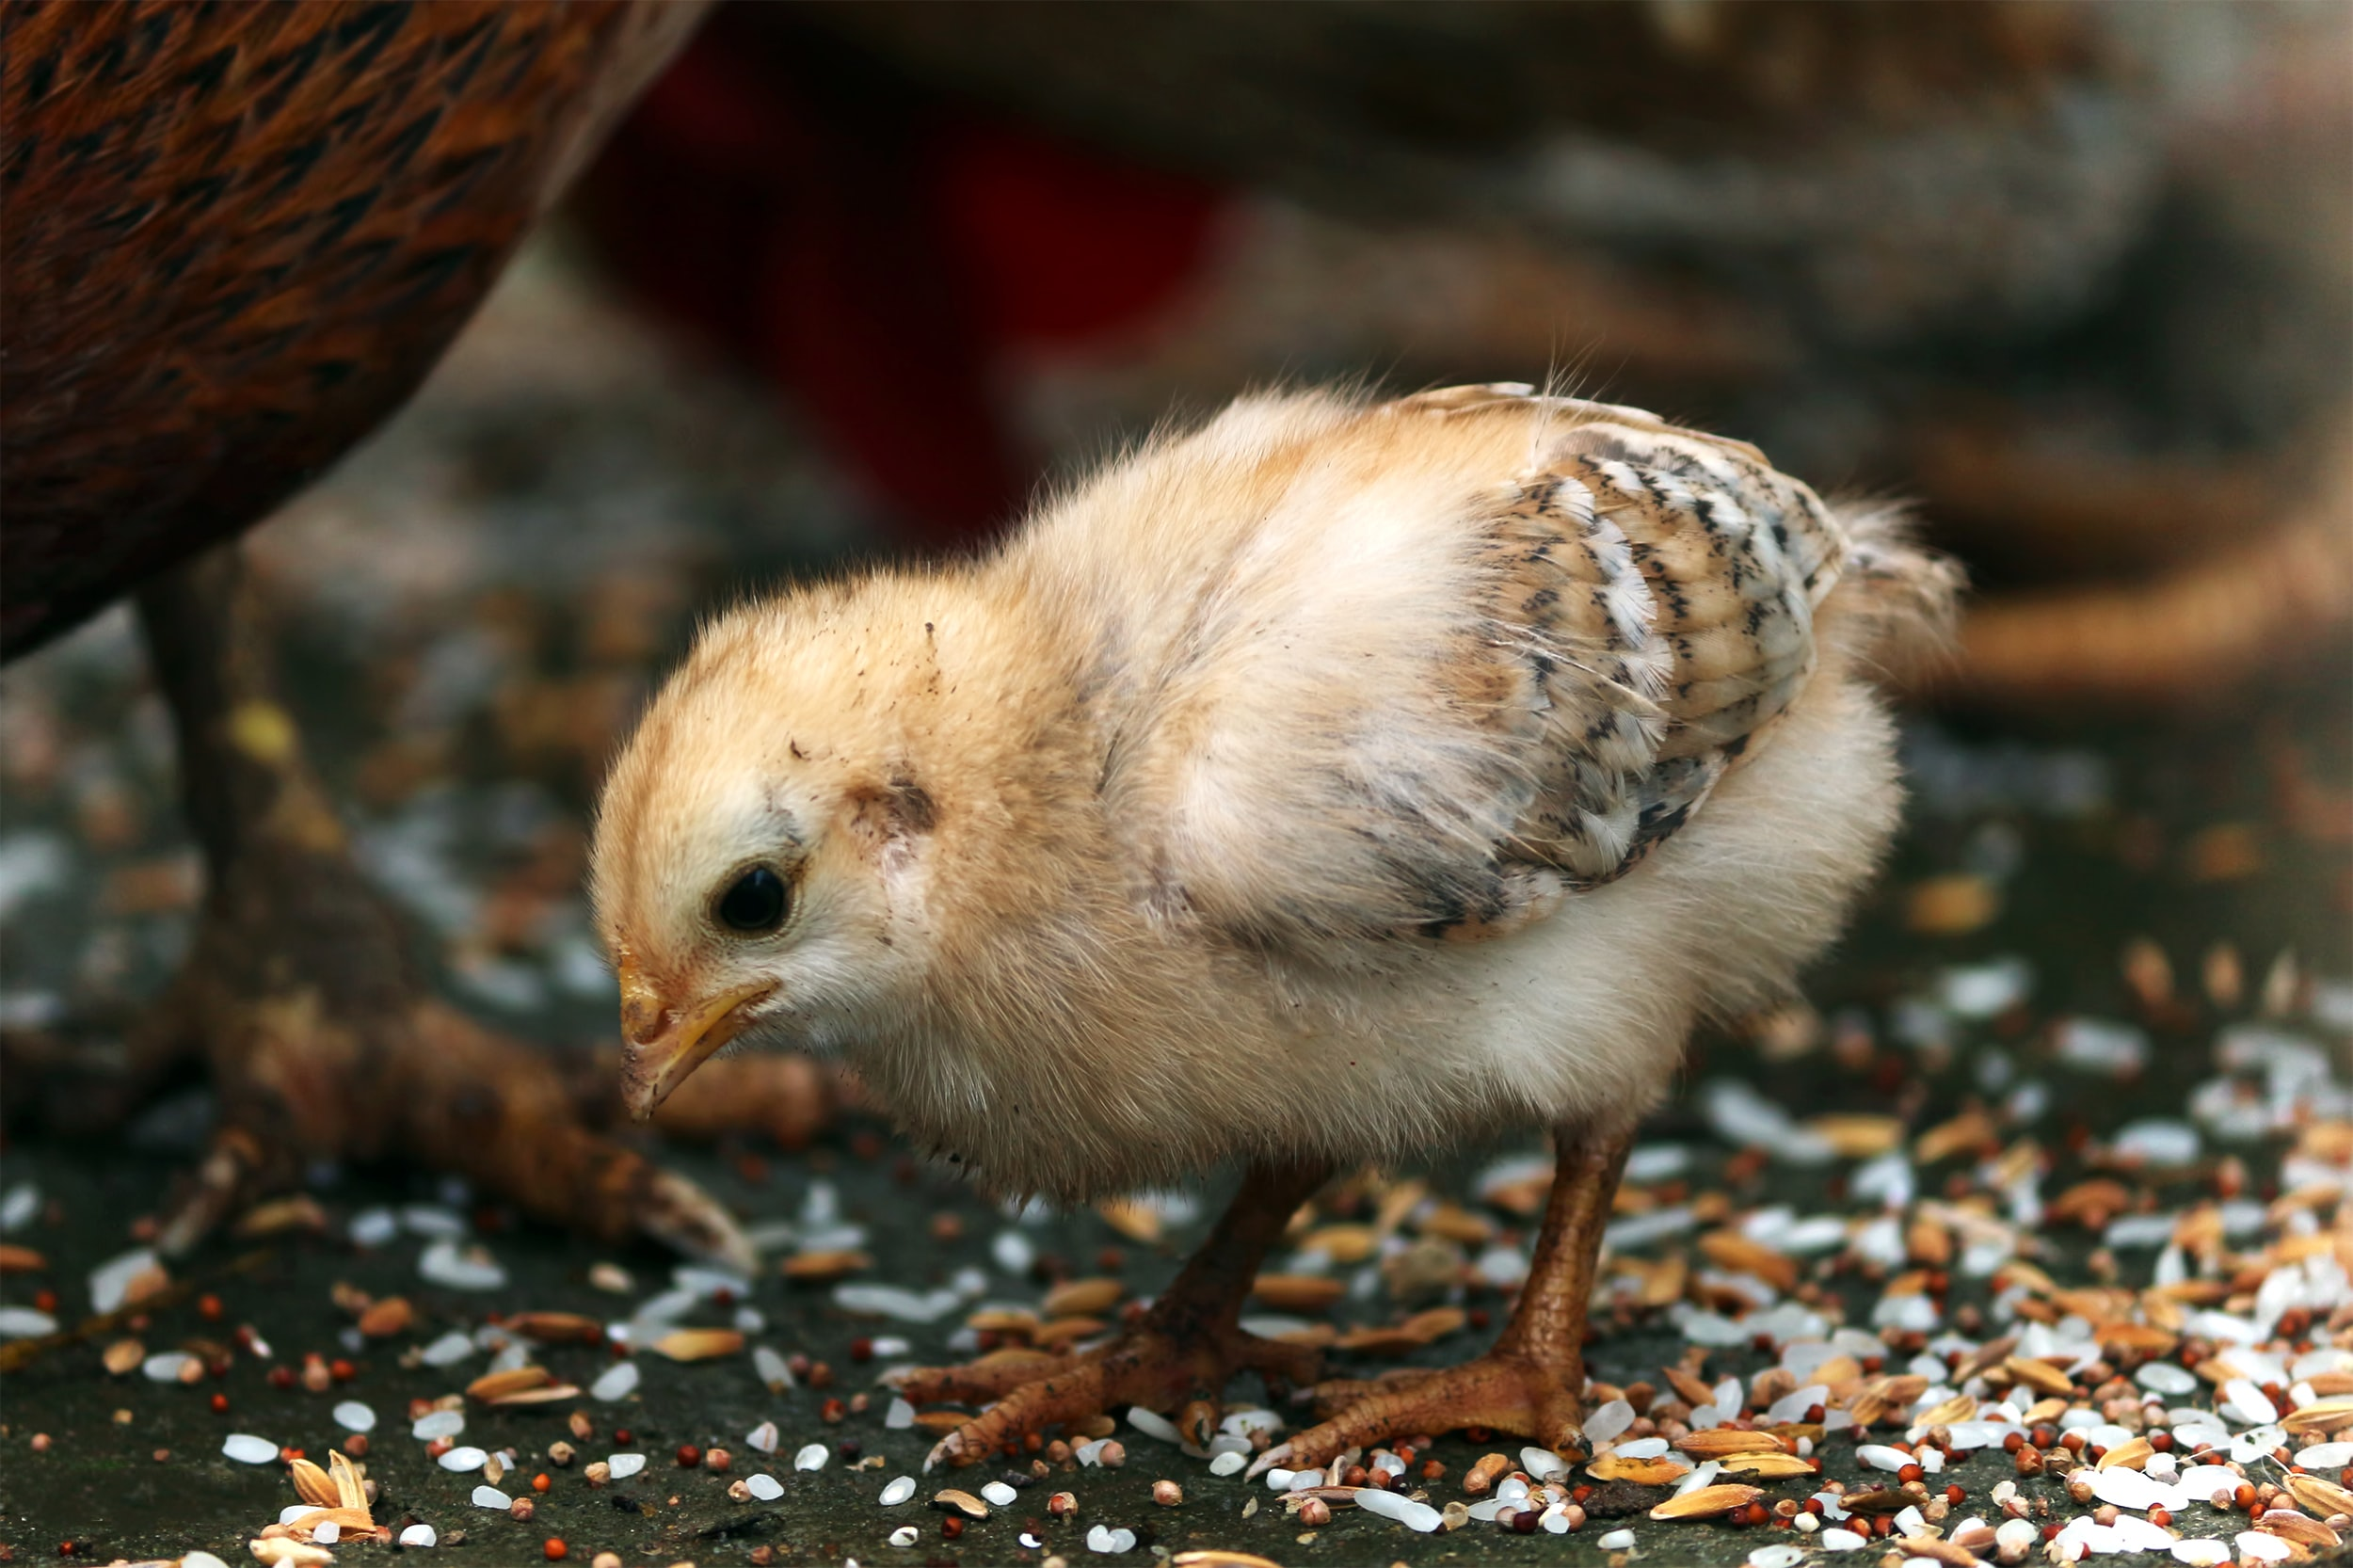 close-up photography of yellow chick eating rice